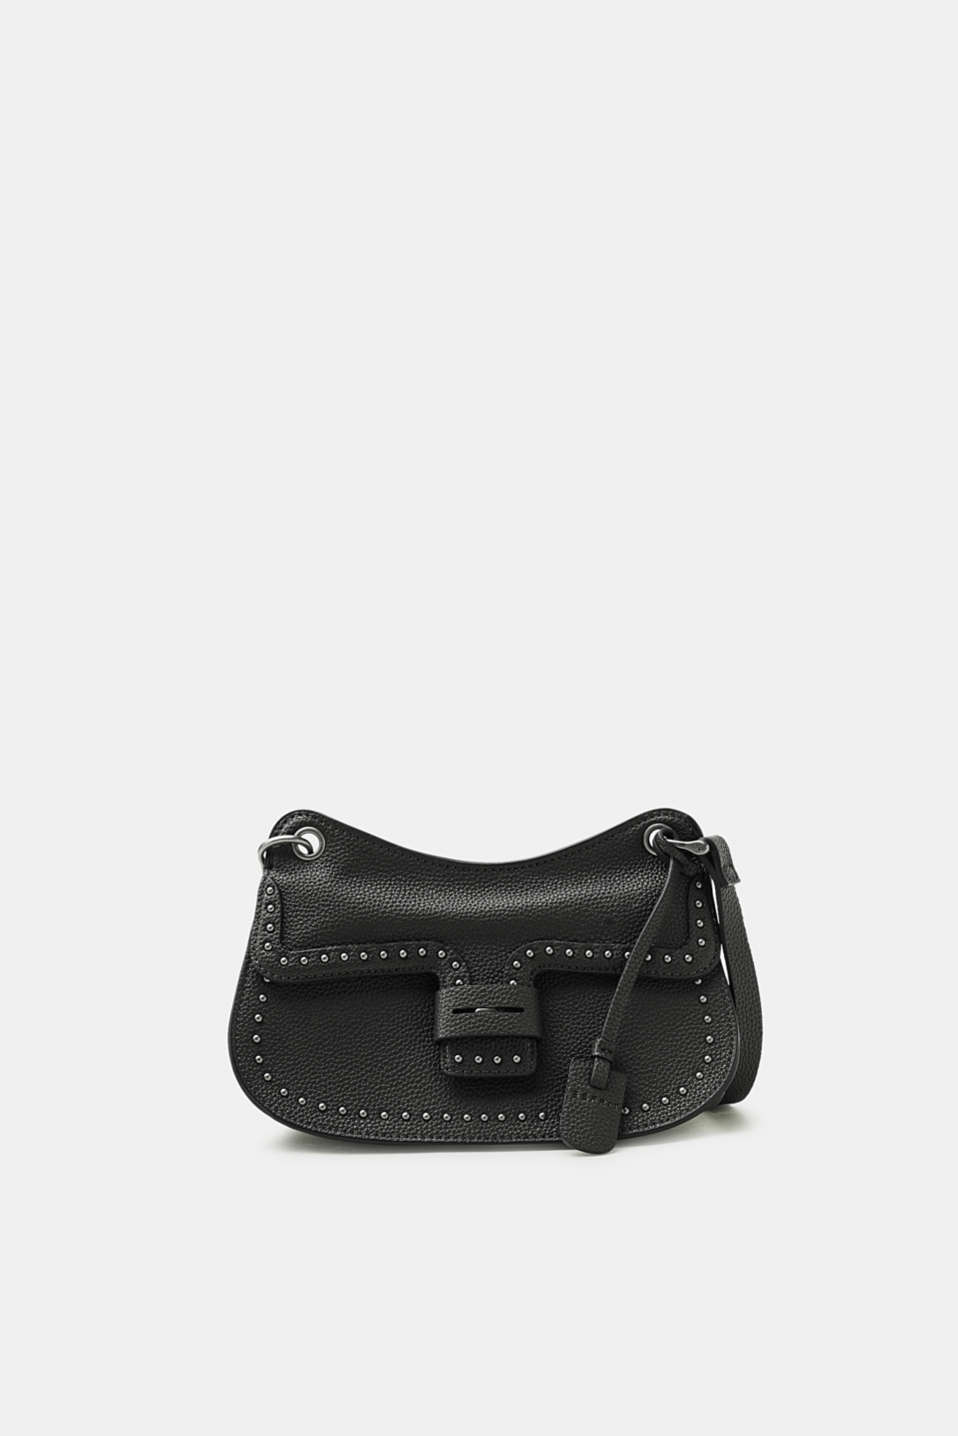 Esprit - Small shoulder bag with studs, in faux leather